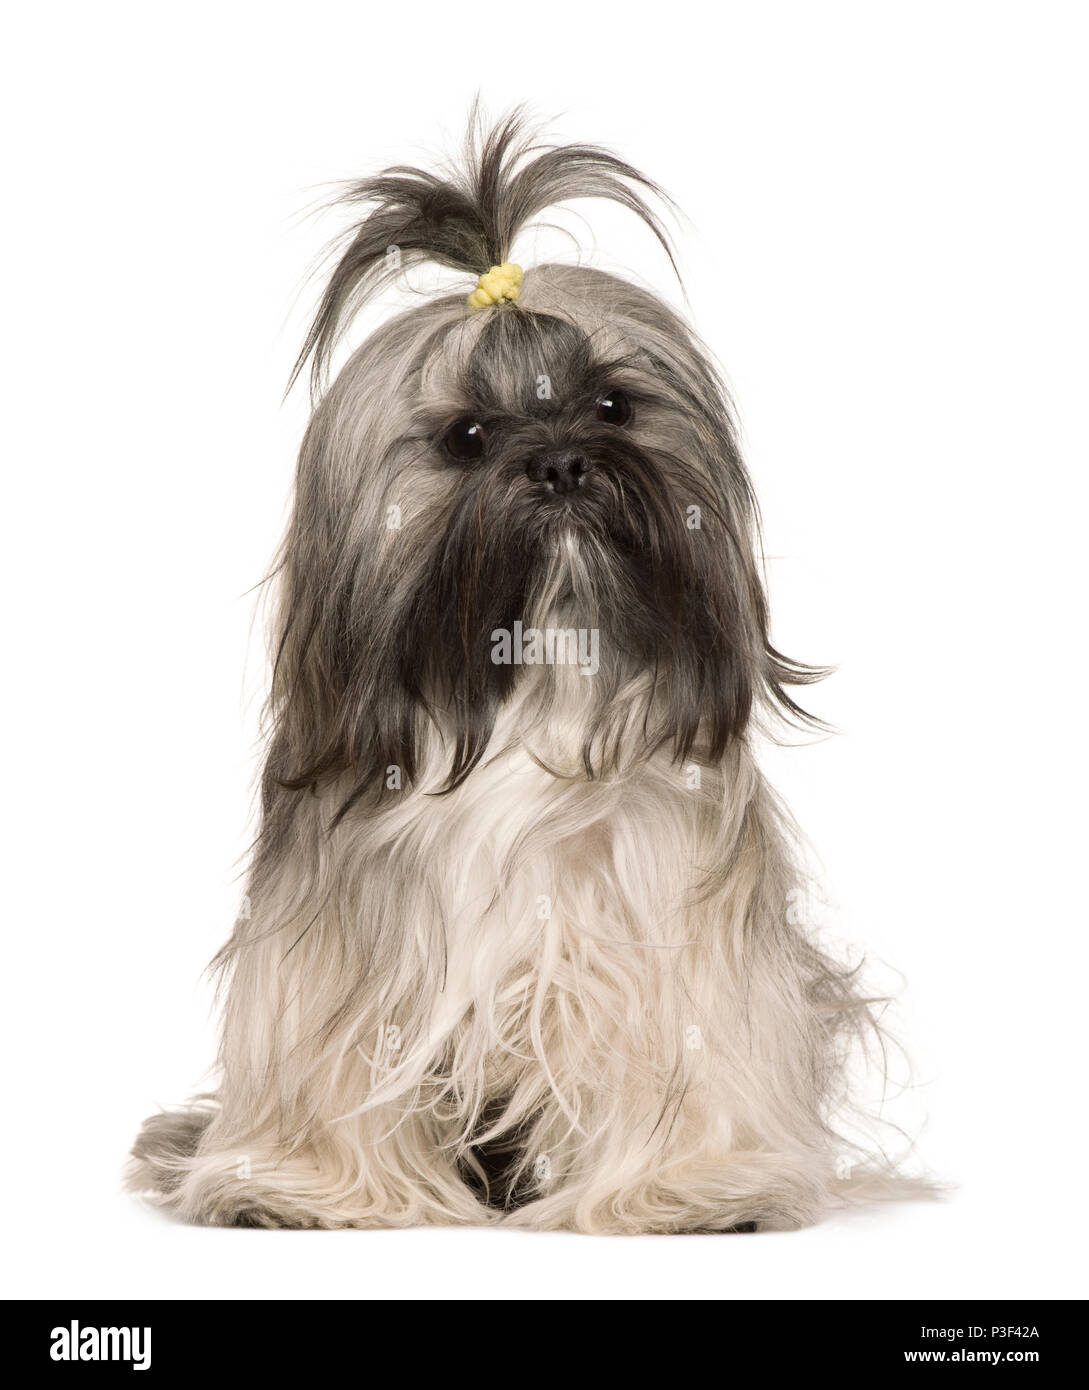 Lhasa Apso, 1 year old, sitting in front of white background - Stock Image